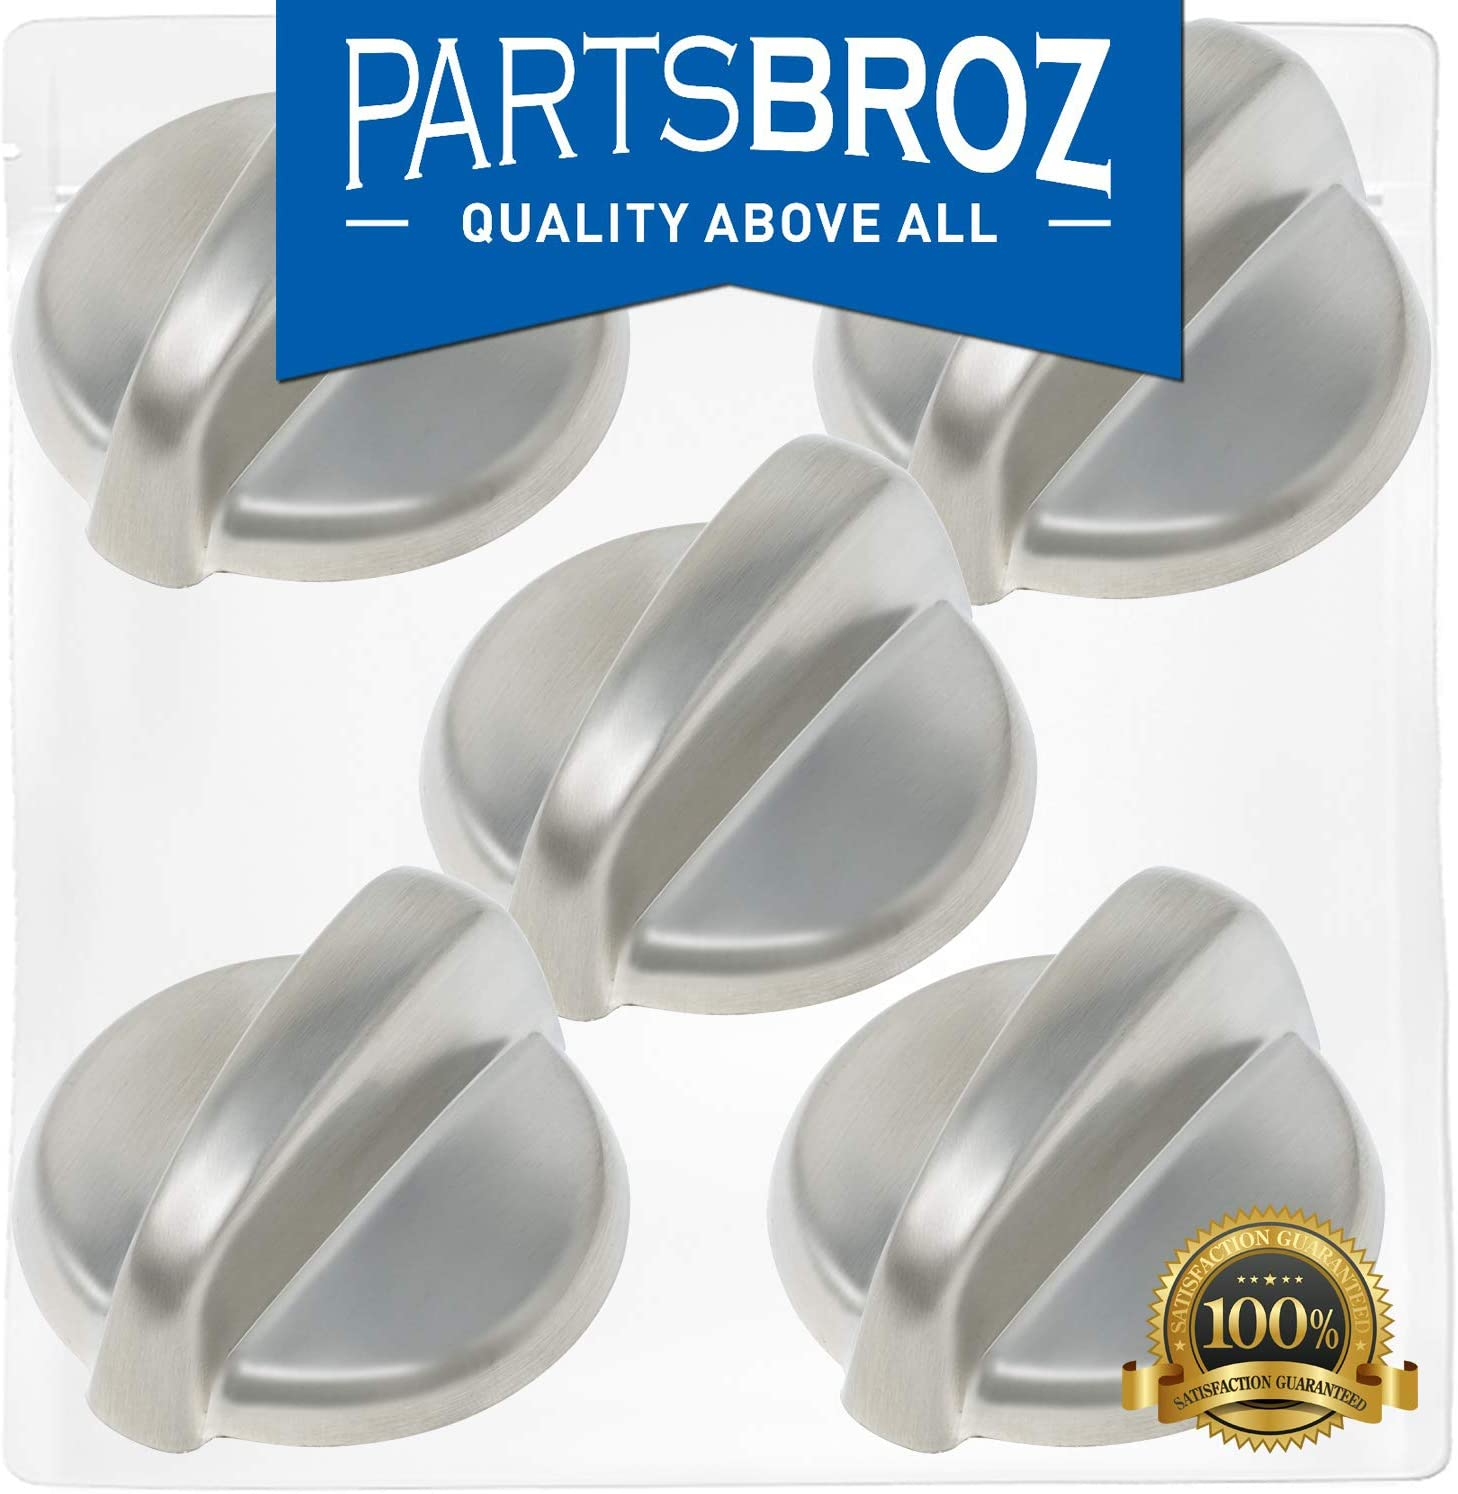 WB03T10284 Burner Control Knobs for GE Stoves, Stainless Steel Finish by PartsBroz - Replaces Part Numbers WB03T10284, AP4346312, 1373043, AH2321076, EA2321076, PS2321076 (Pack of 5)